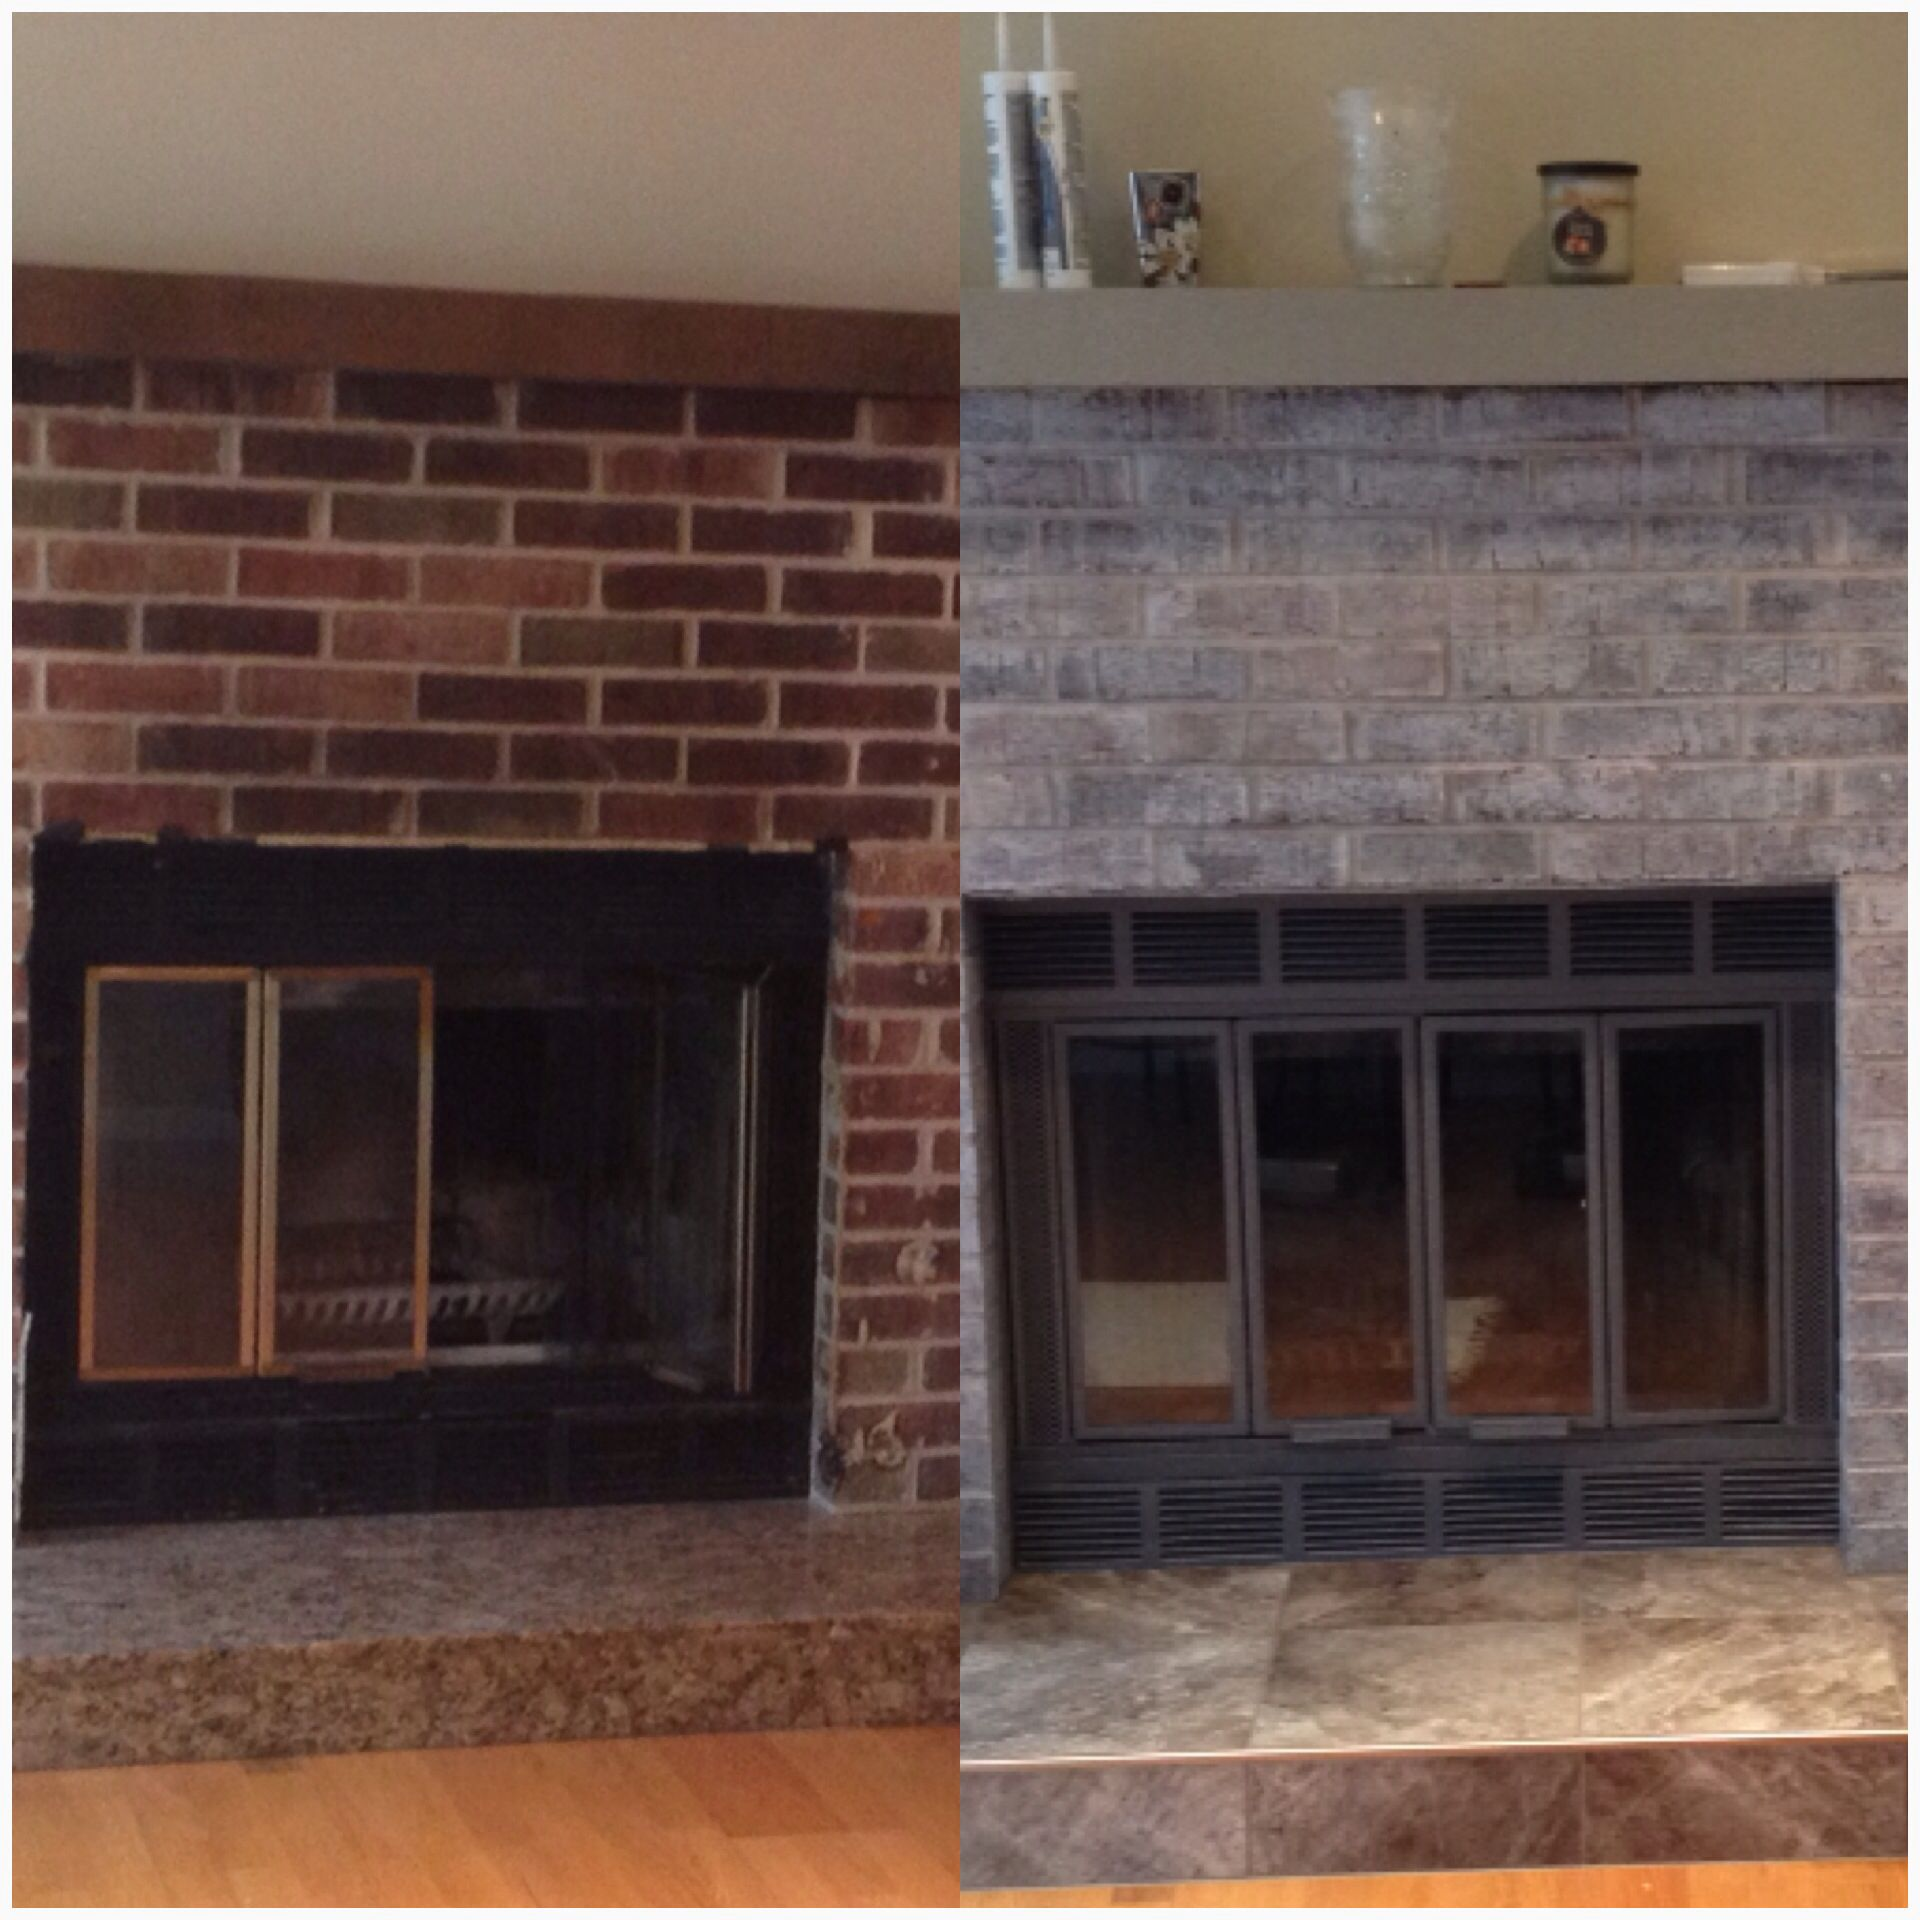 Painting Over Fireplace Dyi Fireplace Make Over I Paint Washed The Brick With A